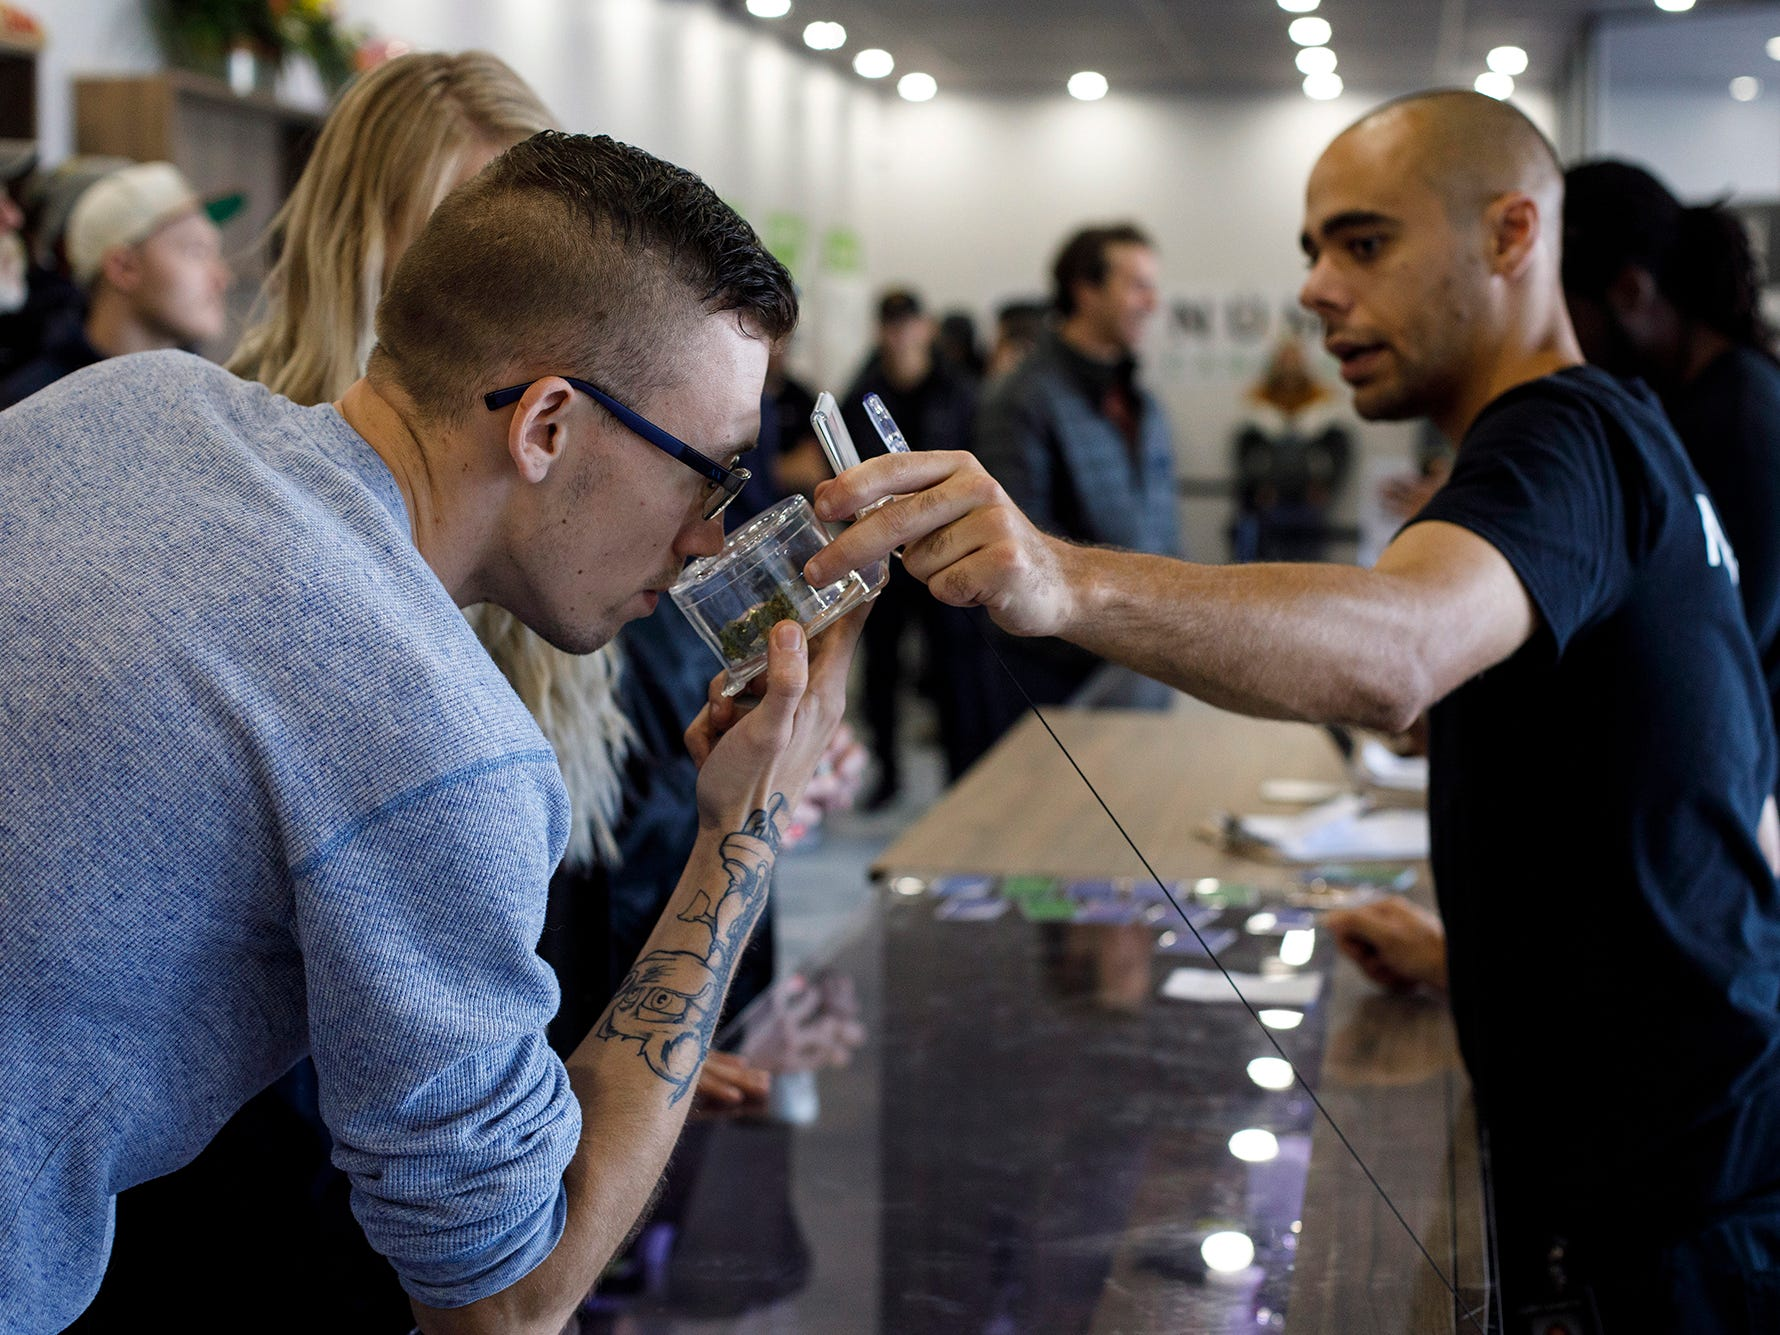 Kyle Bell, of Numo Cannabis, helps a customer decide on his purchase of legal marijuana in Edmonton, Alberta, Wednesday, Oct. 17, 2018.